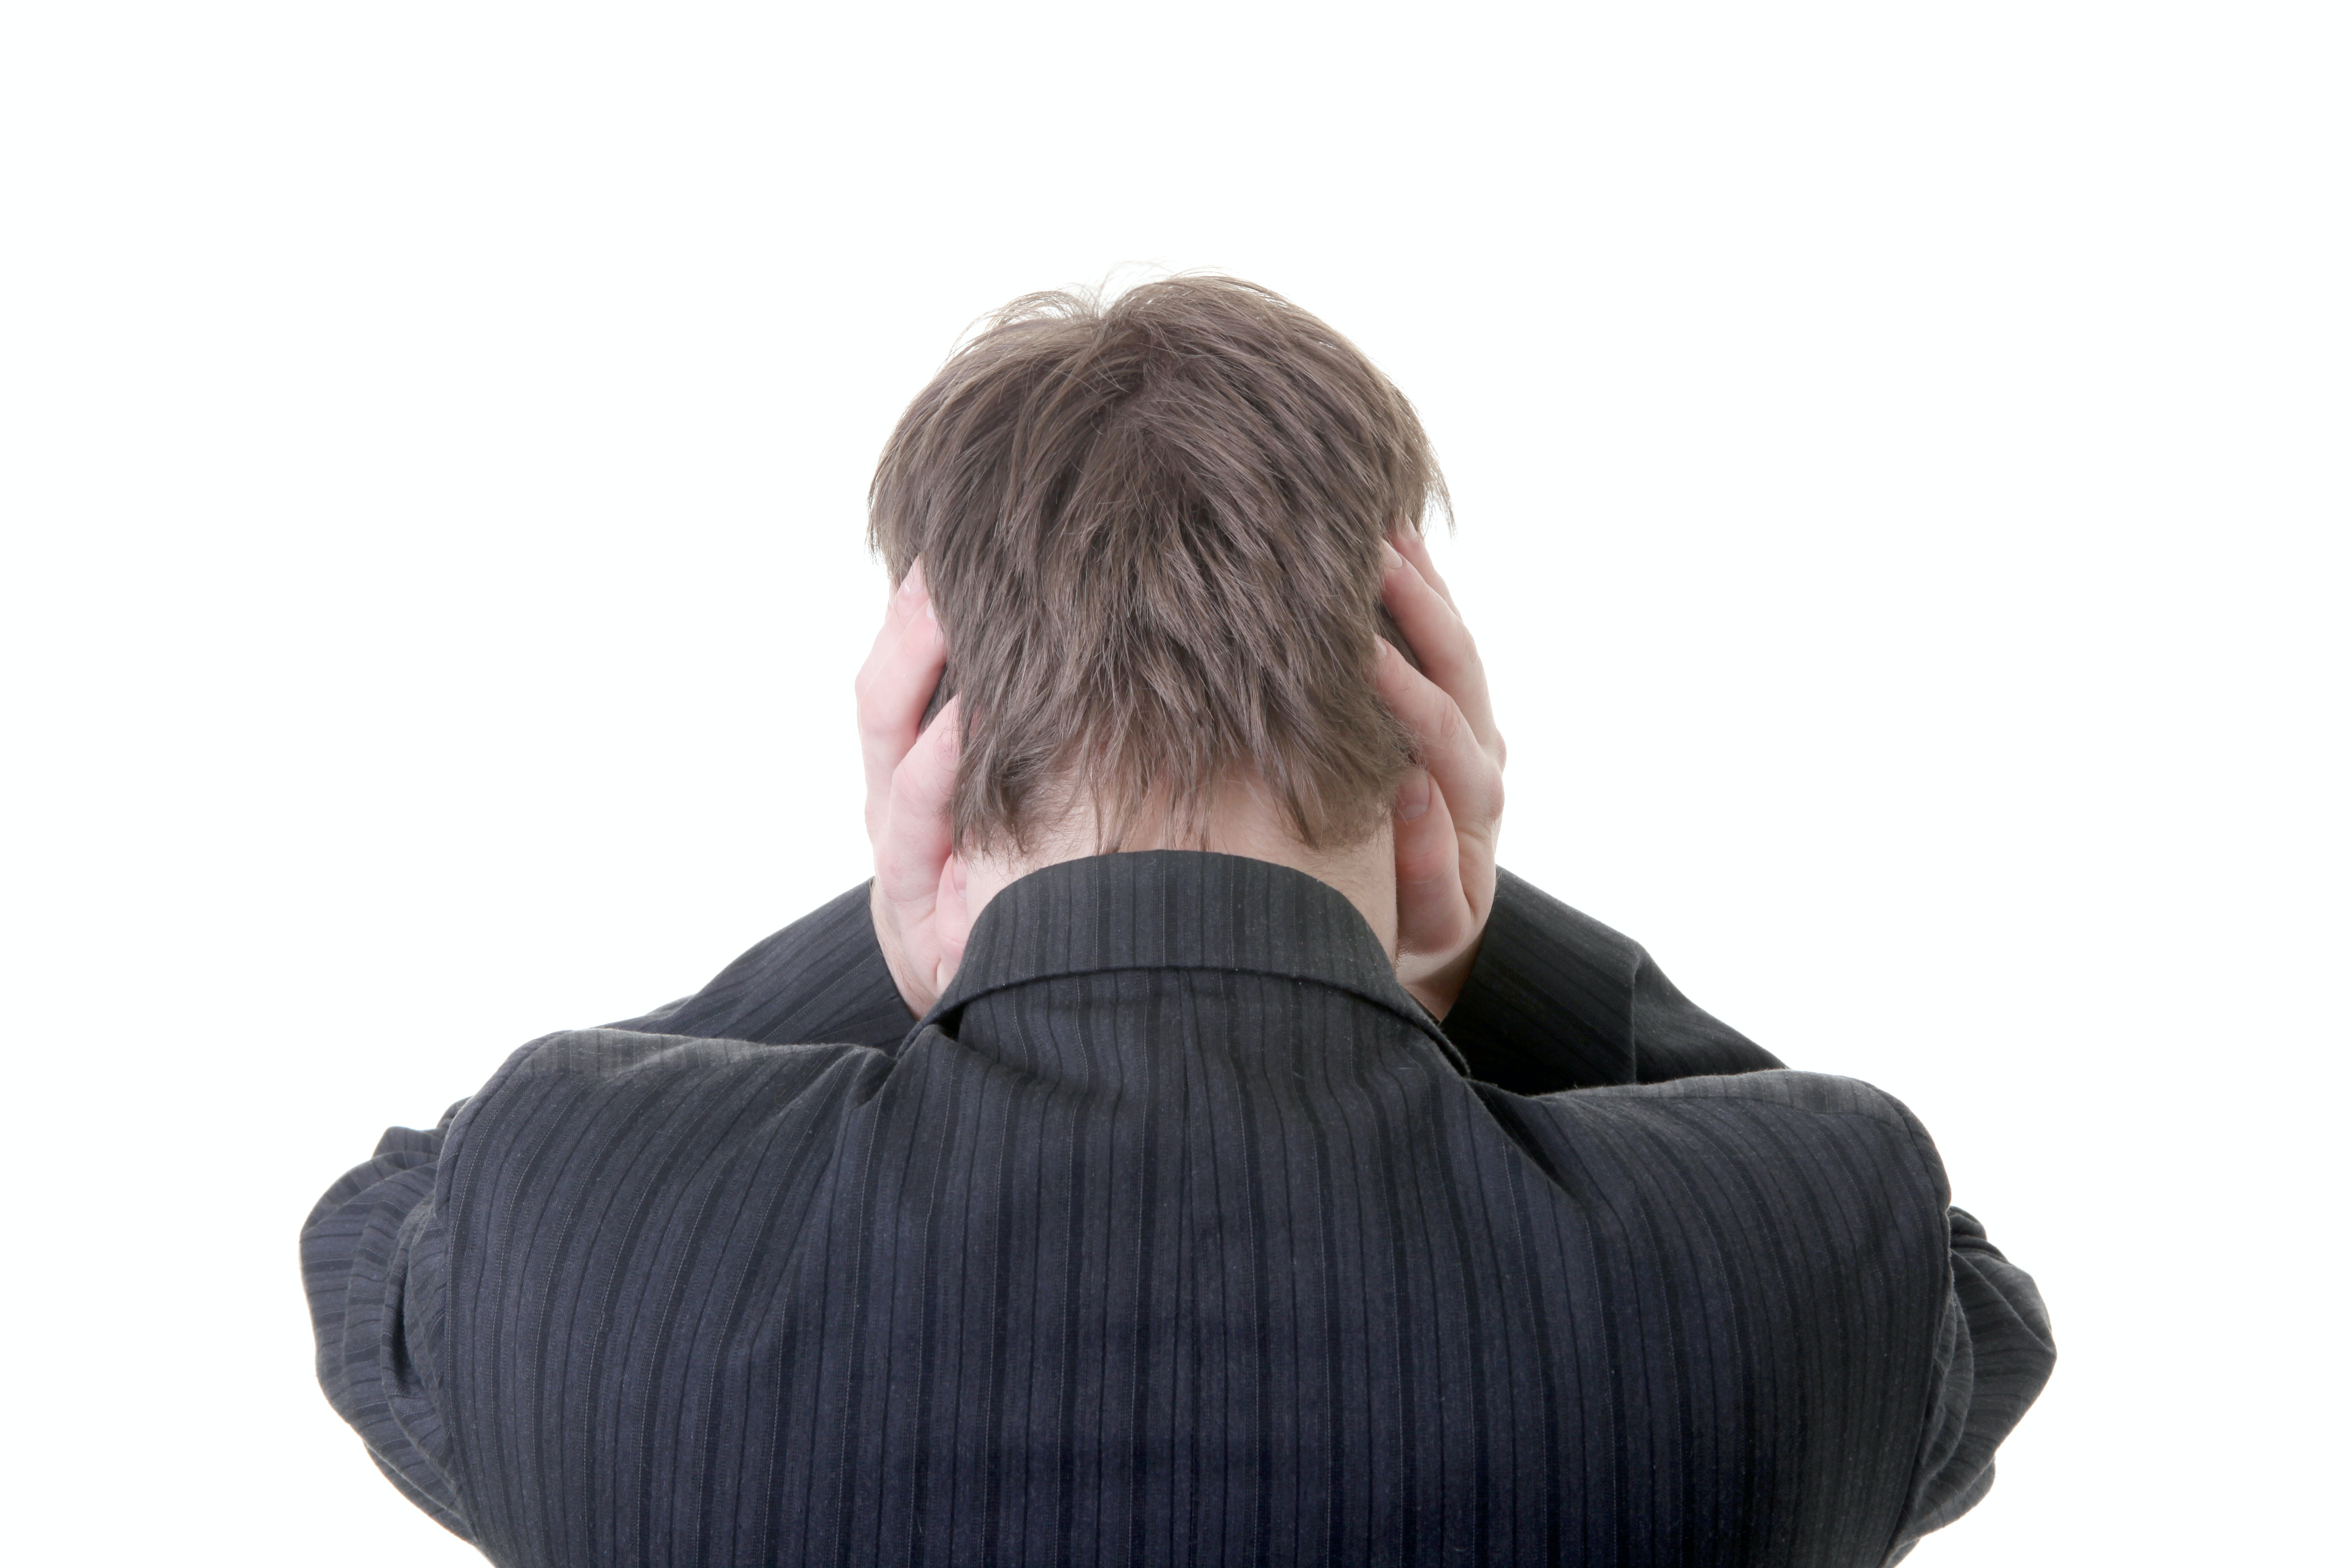 An image depicting a person suffering from heartbeat sound in the ear symptoms